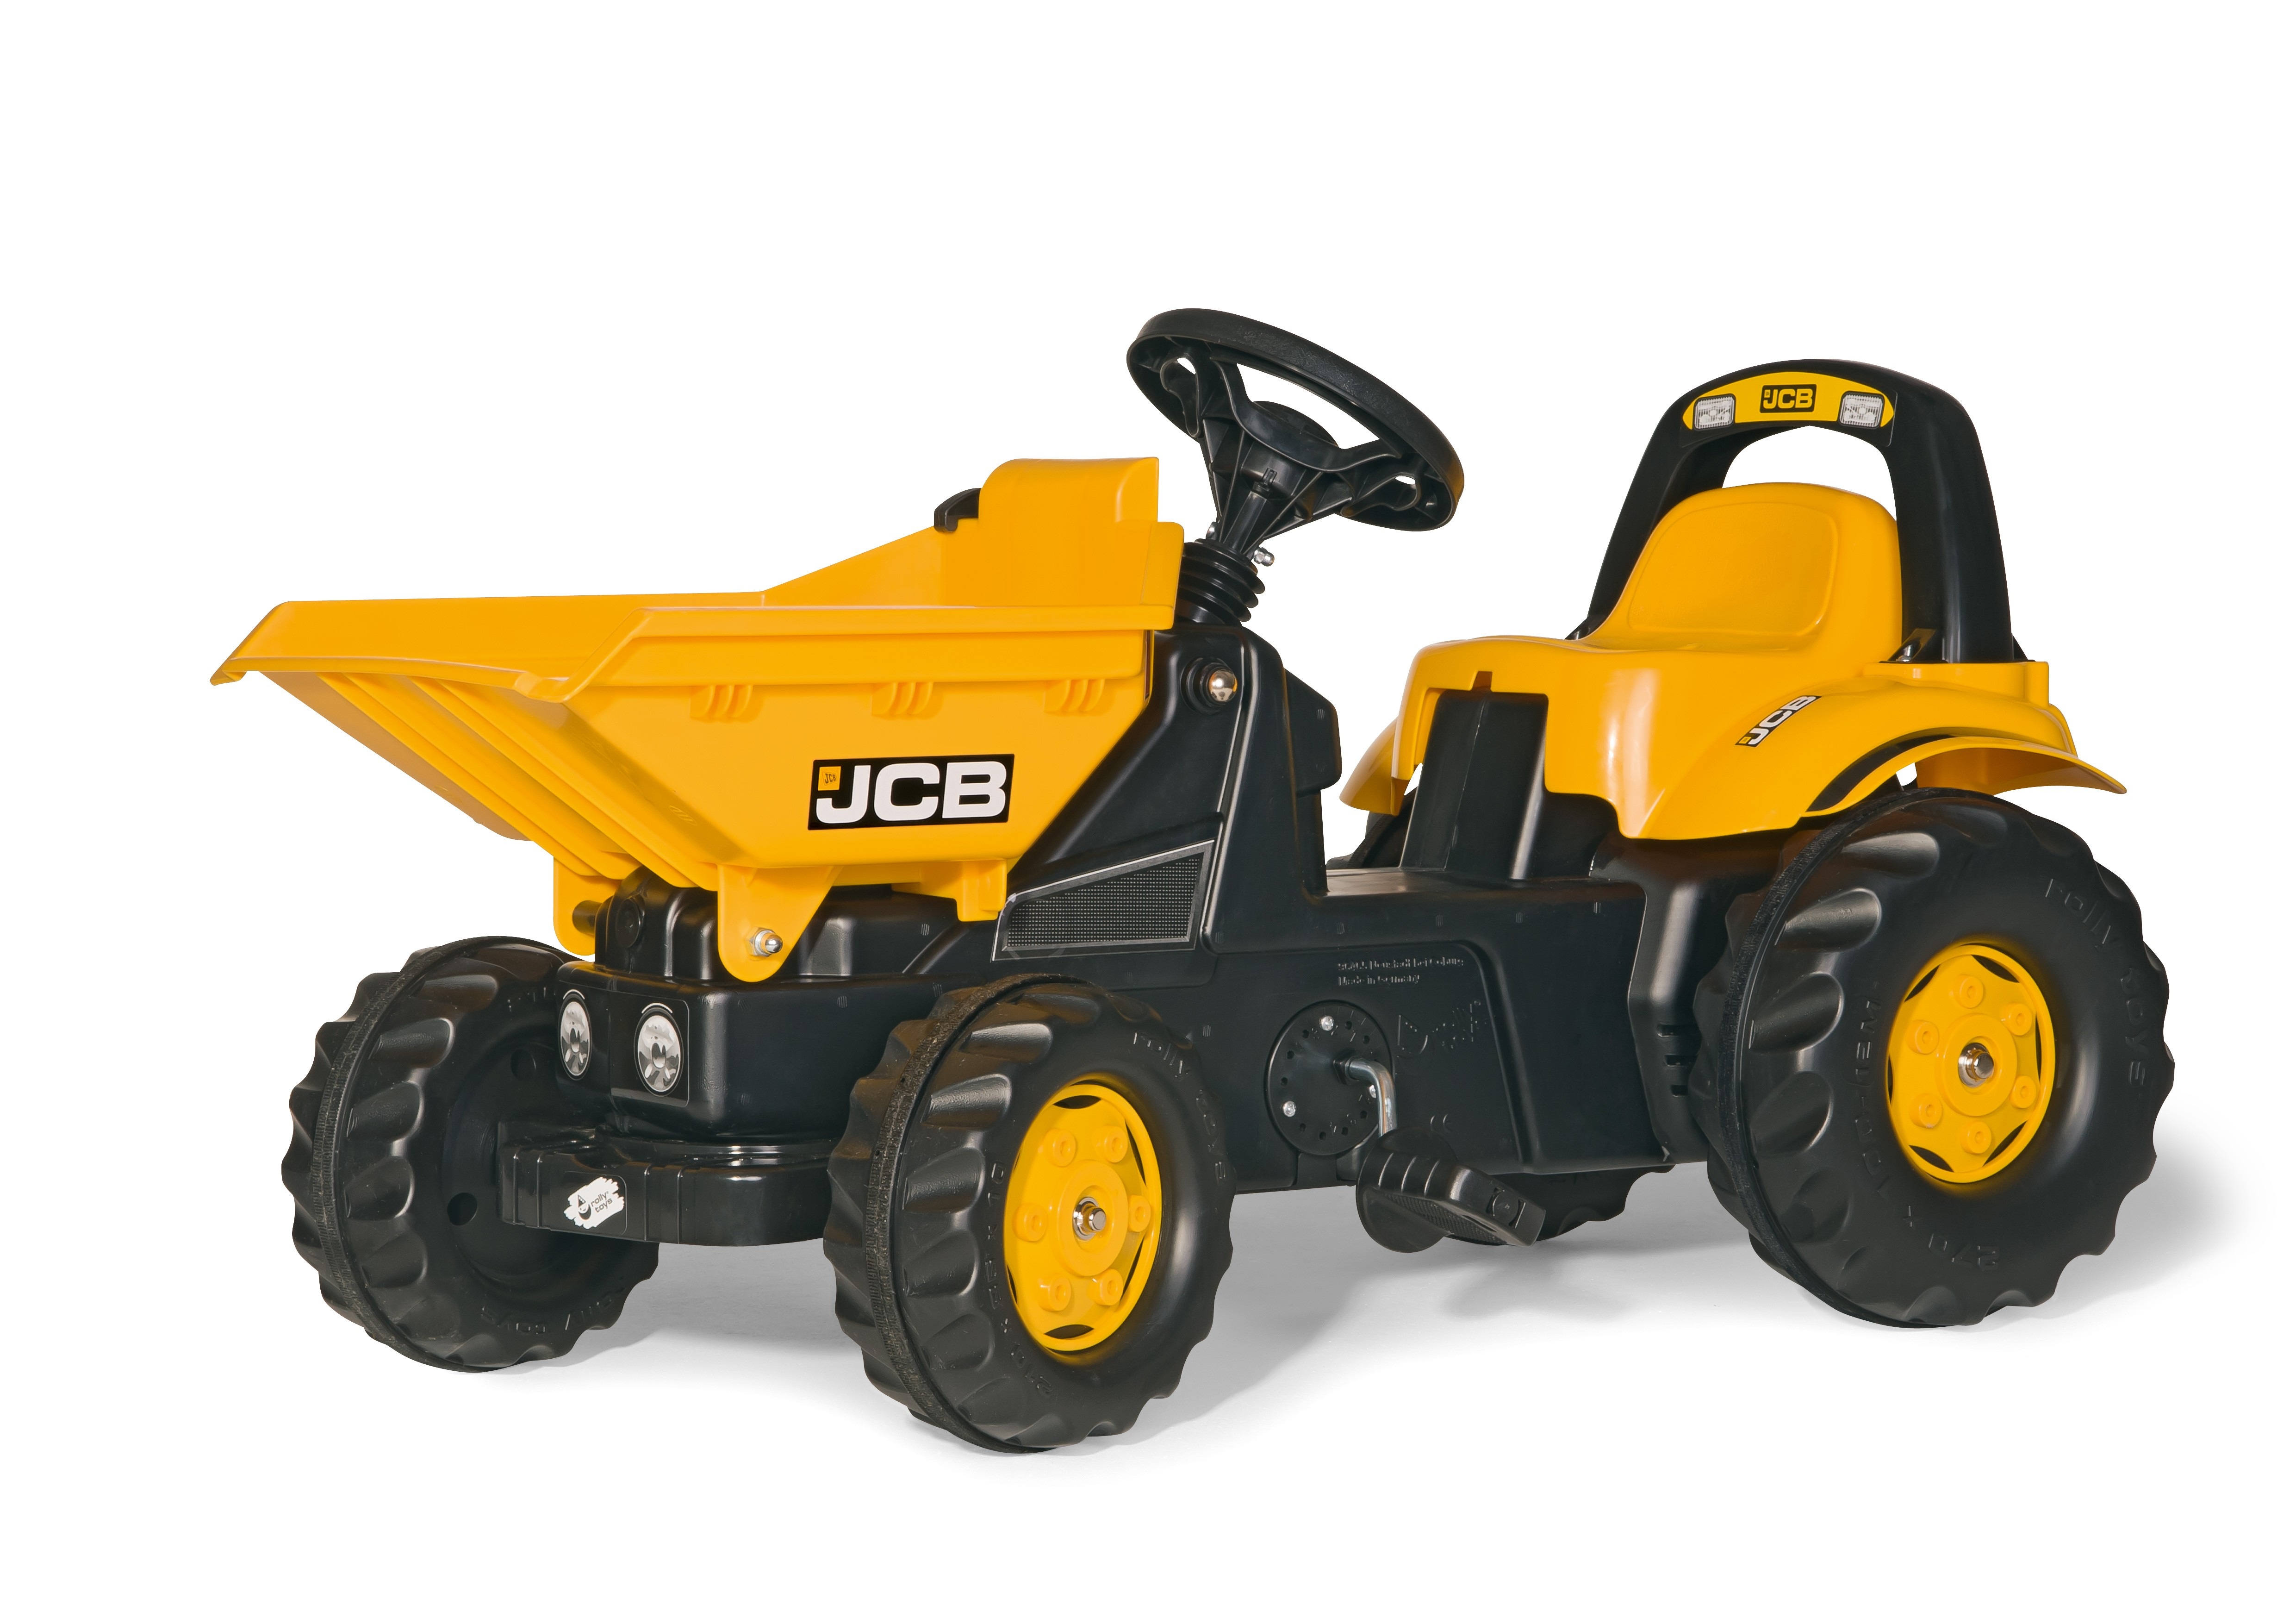 trettraktor rolly dumper kid jcb rolly toys bei. Black Bedroom Furniture Sets. Home Design Ideas